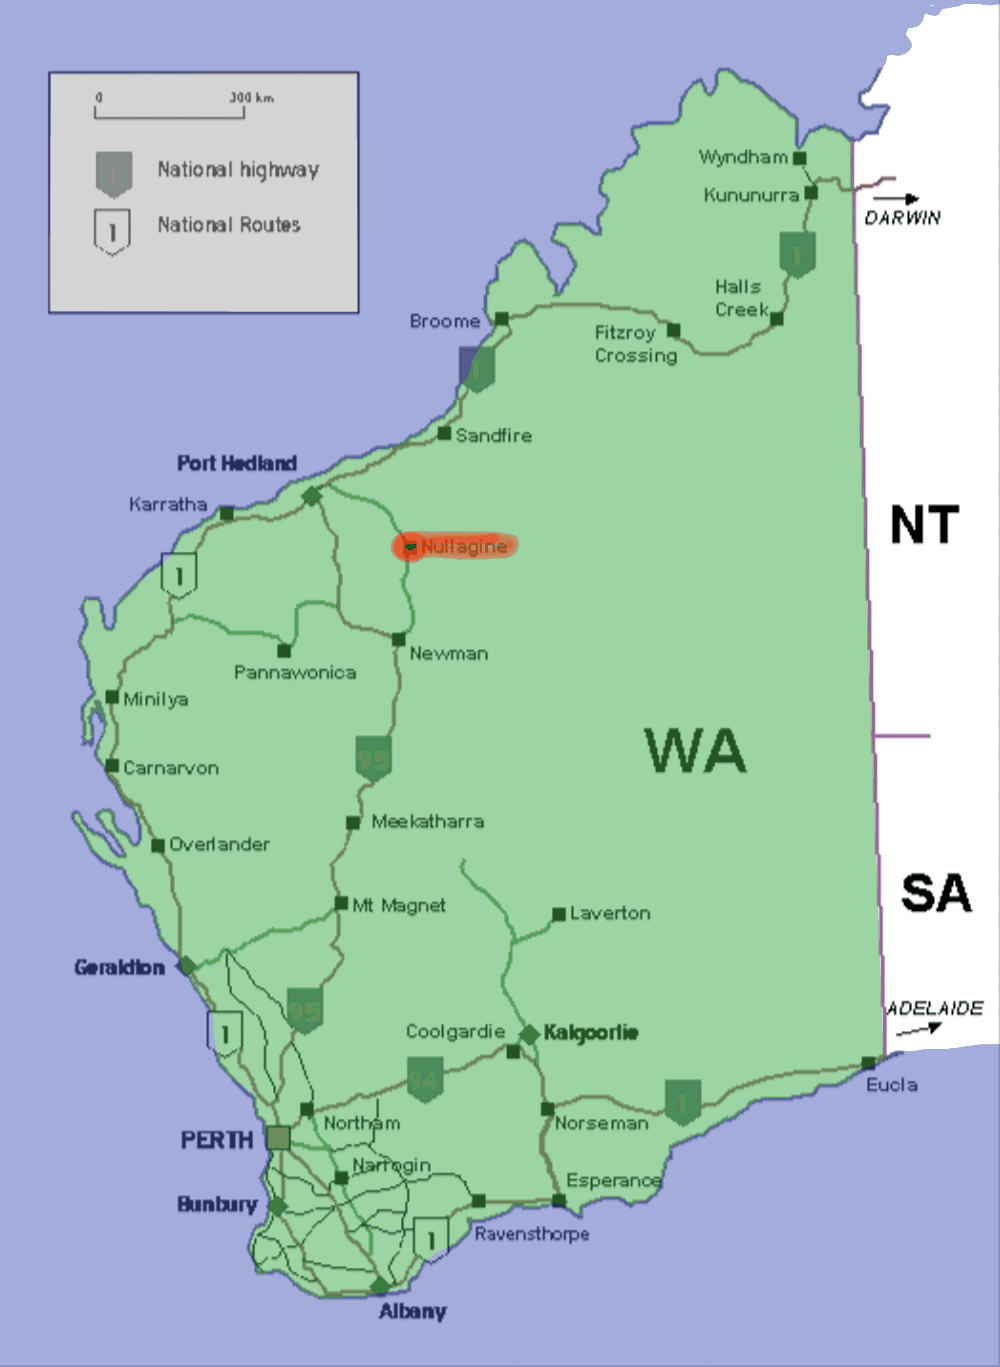 Nullagine Western Australia Wikipedia - Map of western australia with towns